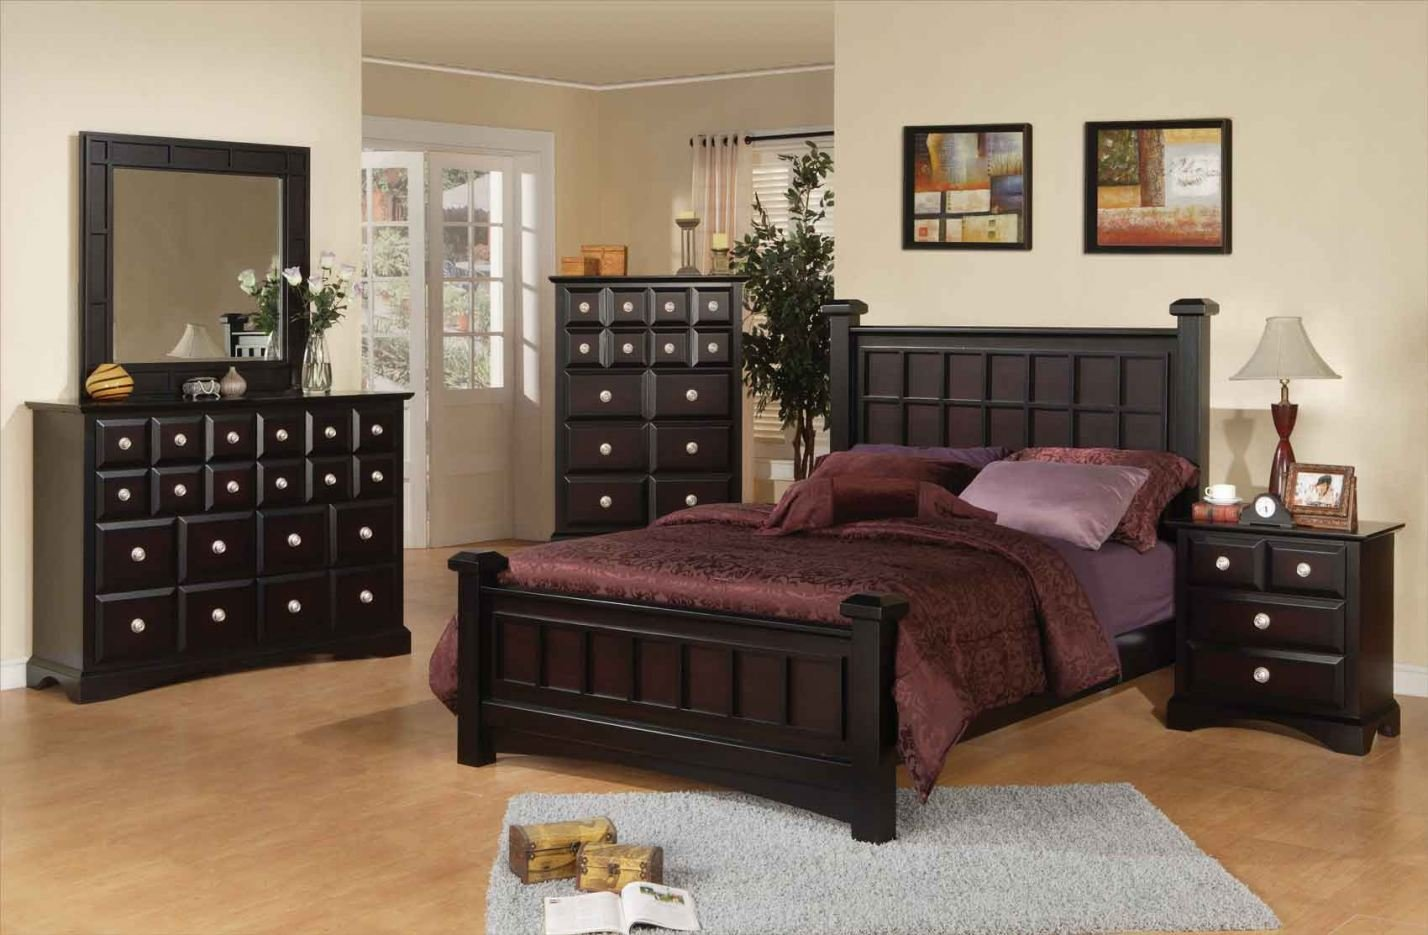 Best La Curacao Bedroom Sets Grupo1C Com With Pictures